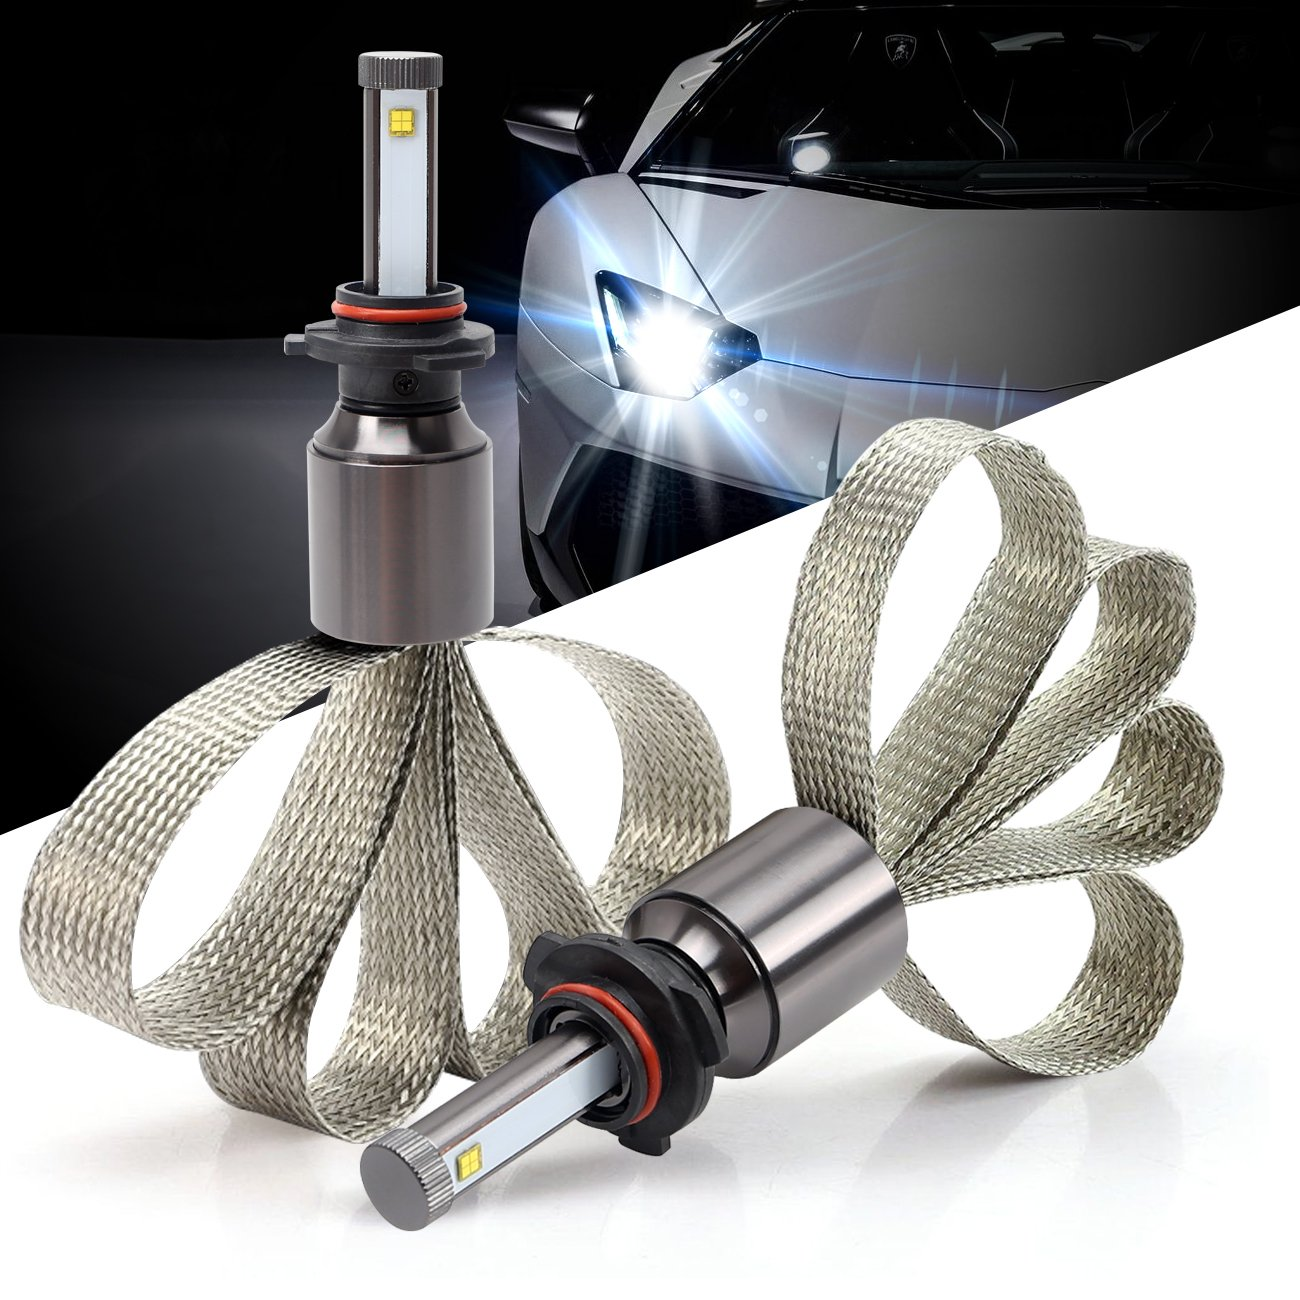 Pack of 2 Green-L LED Headlight Conversion Kit Copper Heat Dissipation H11 90W 9800lm CREE XHP-50 Chips 6000k White Plug /& Play